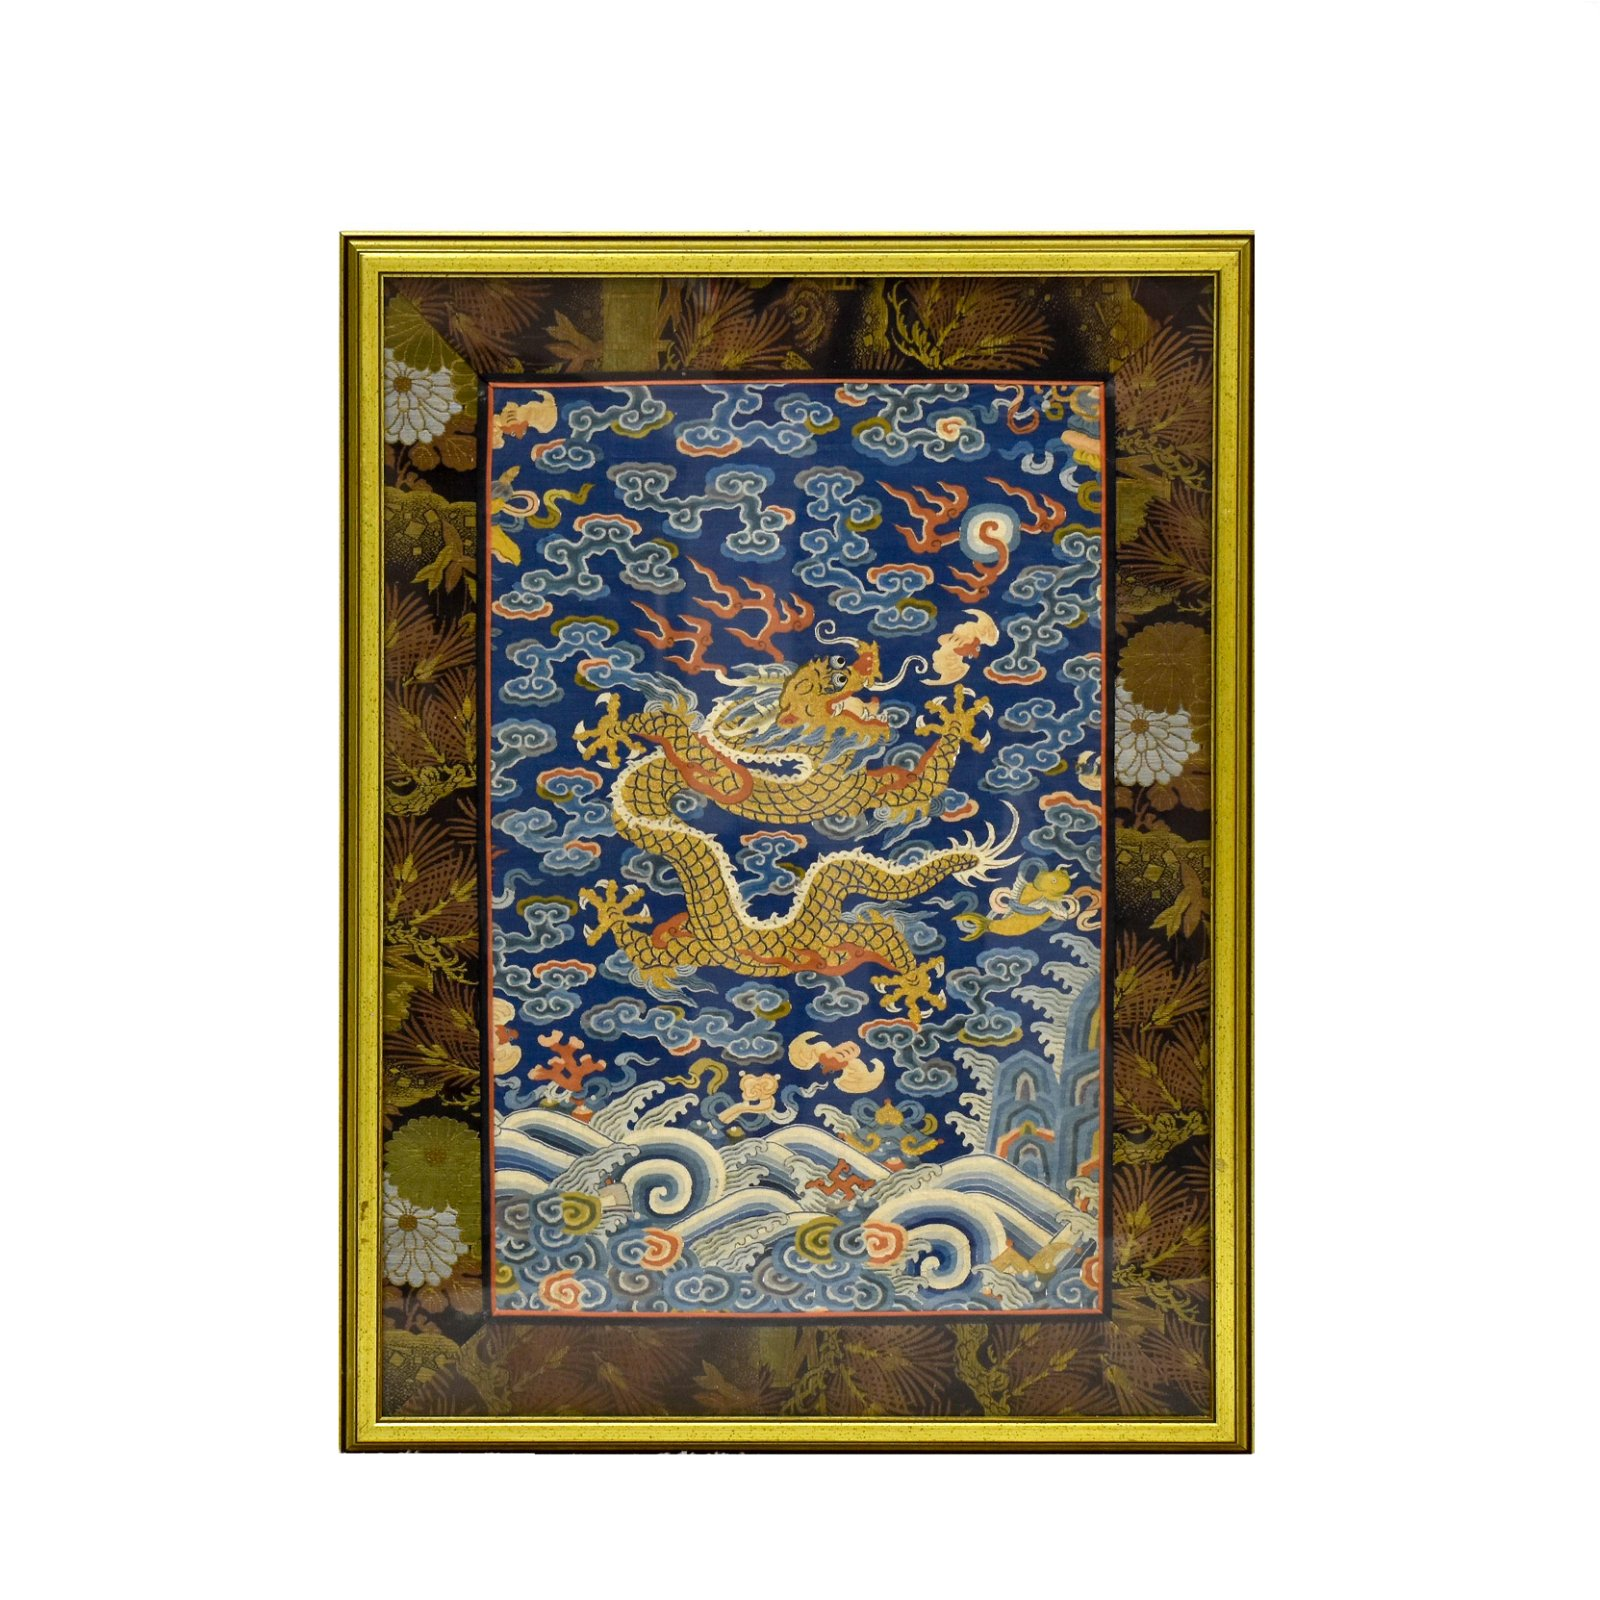 18TH C FRAMED EMBROIDERY SILK IMPERIAL DRAGON